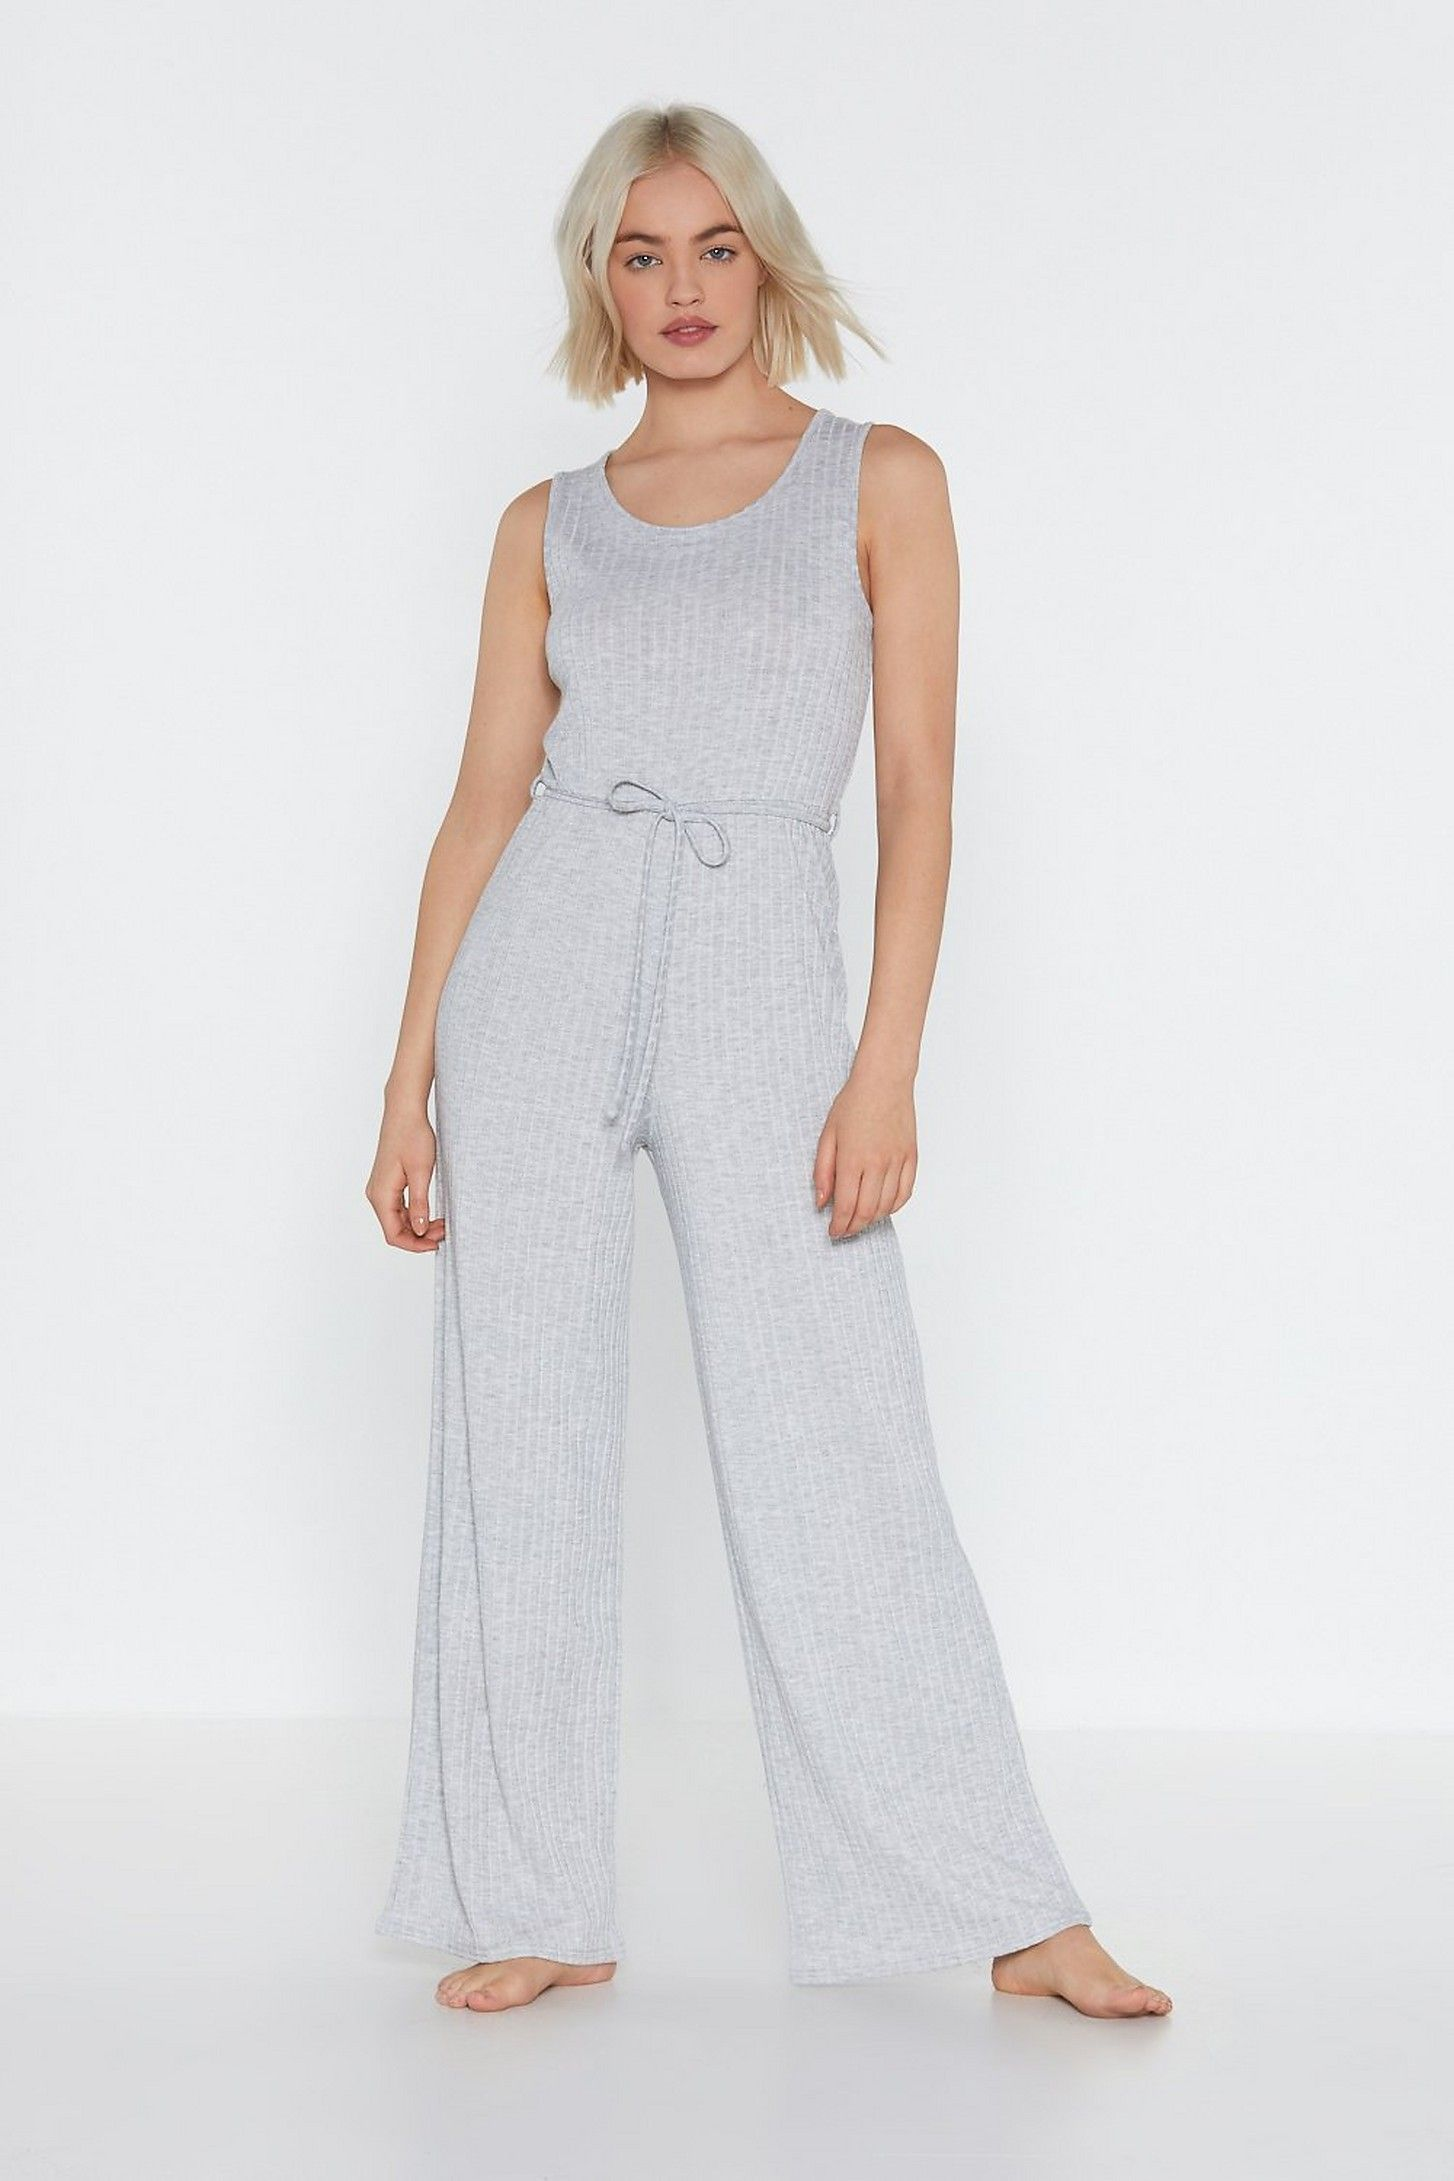 0fee64299a6 That Tie of Day Ribbed Wide-Leg Lounge Jumpsuit